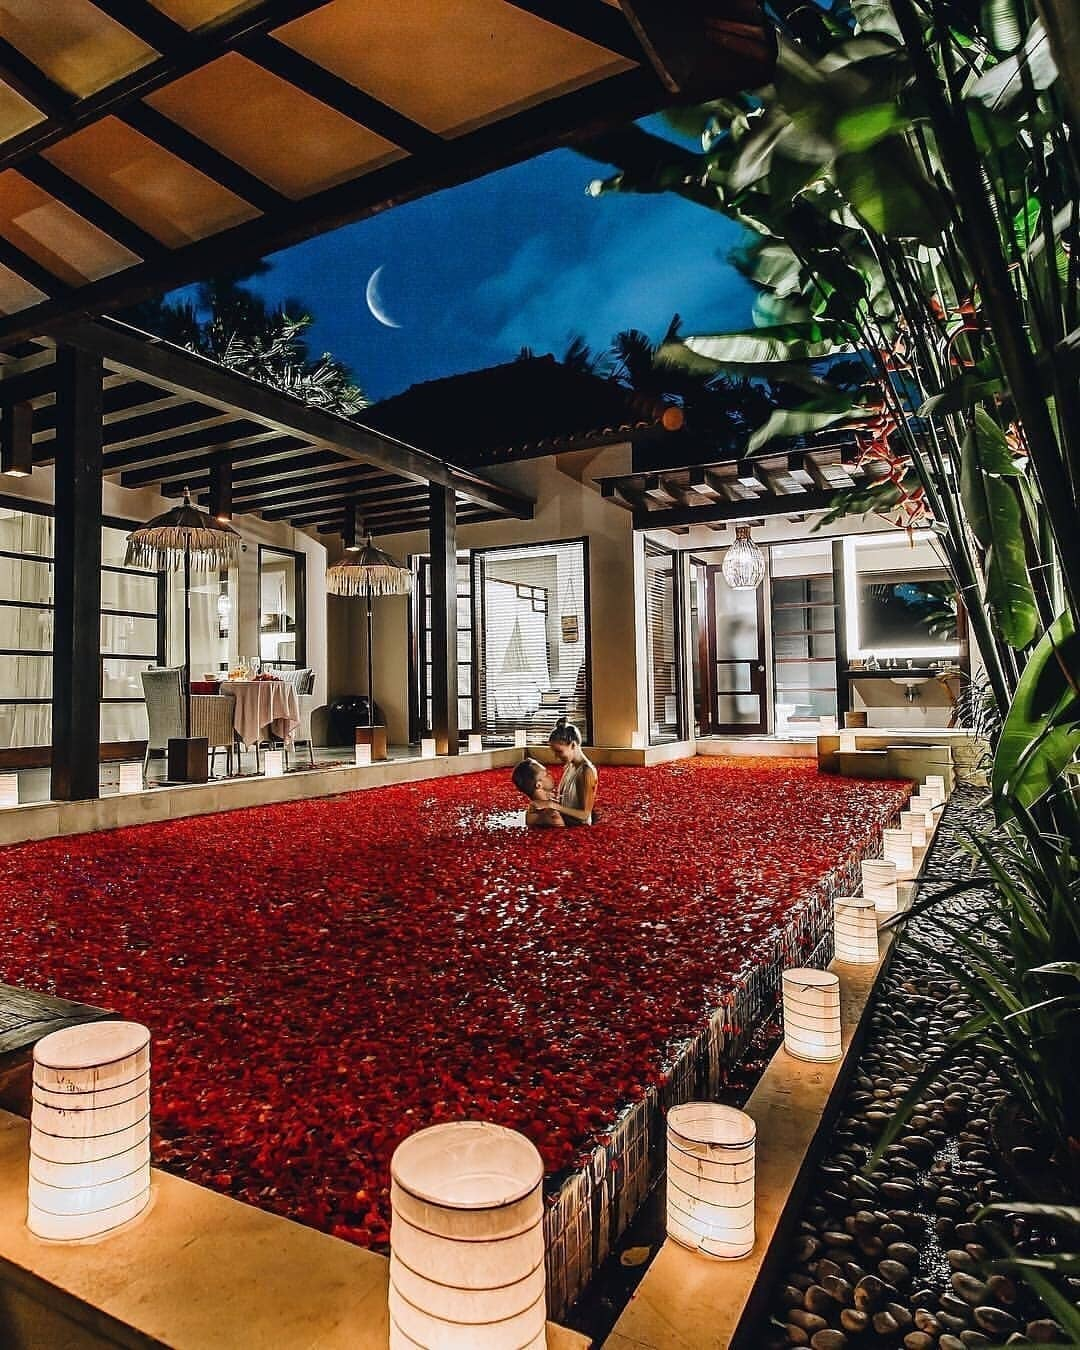 10 Of The Prettiest Honeymoon Hotels We Found On Instagram! *Including An Indian One!